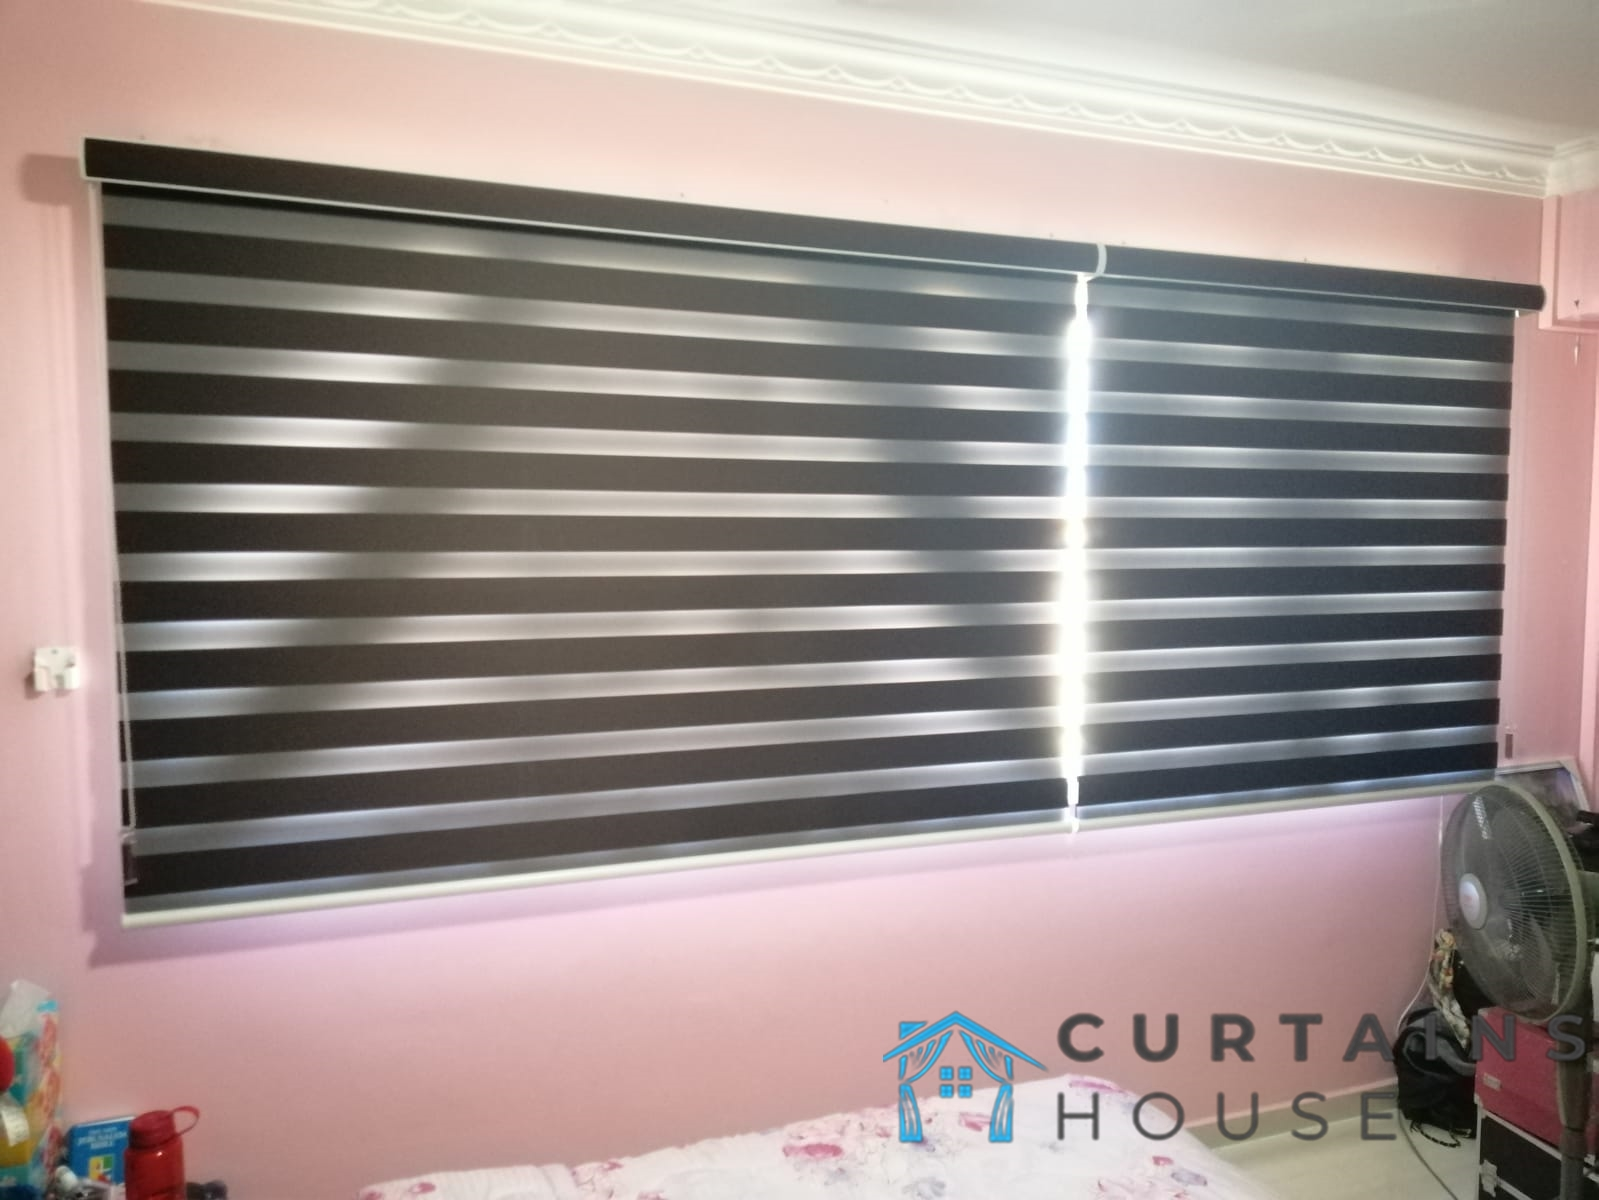 Korean Blinds Bedroom Blinds Installation Curtains House Singapore HDB – Tampines